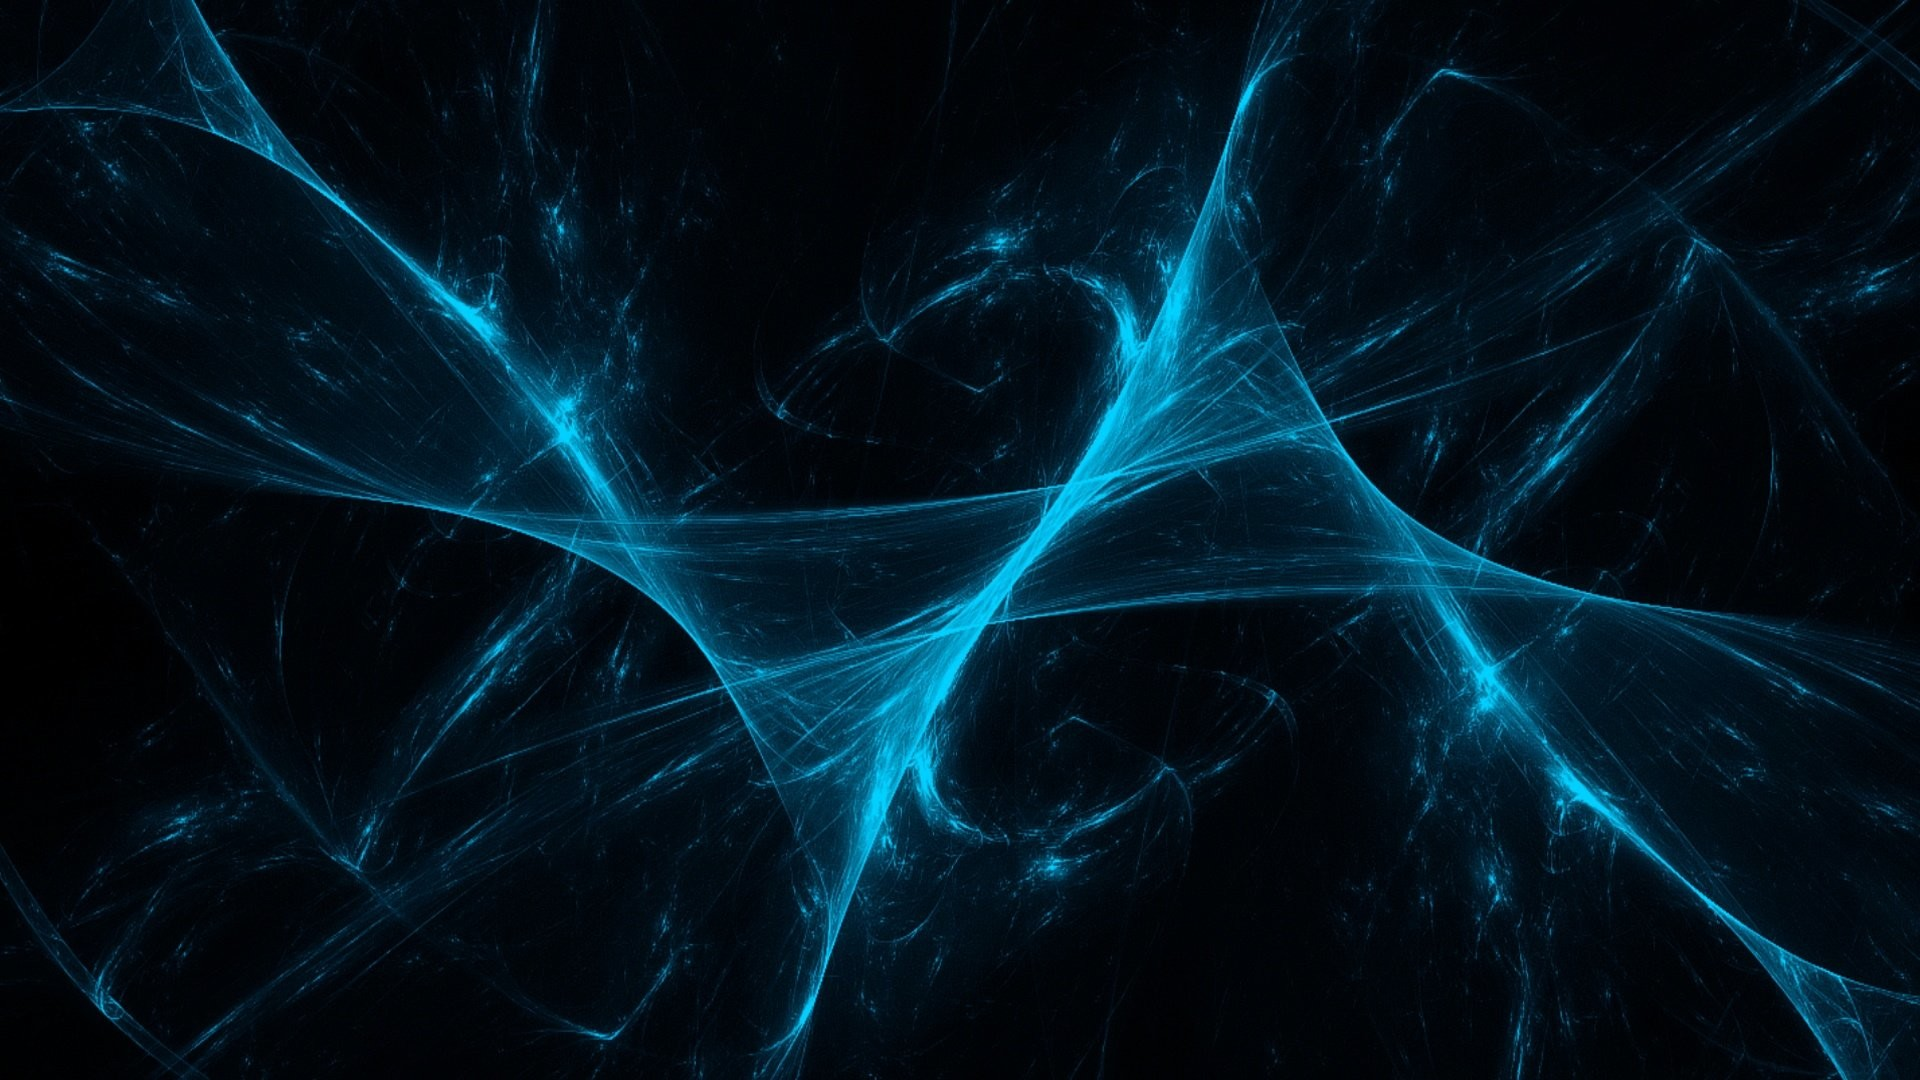 1366x768 abstract wallpaper (65+ images)